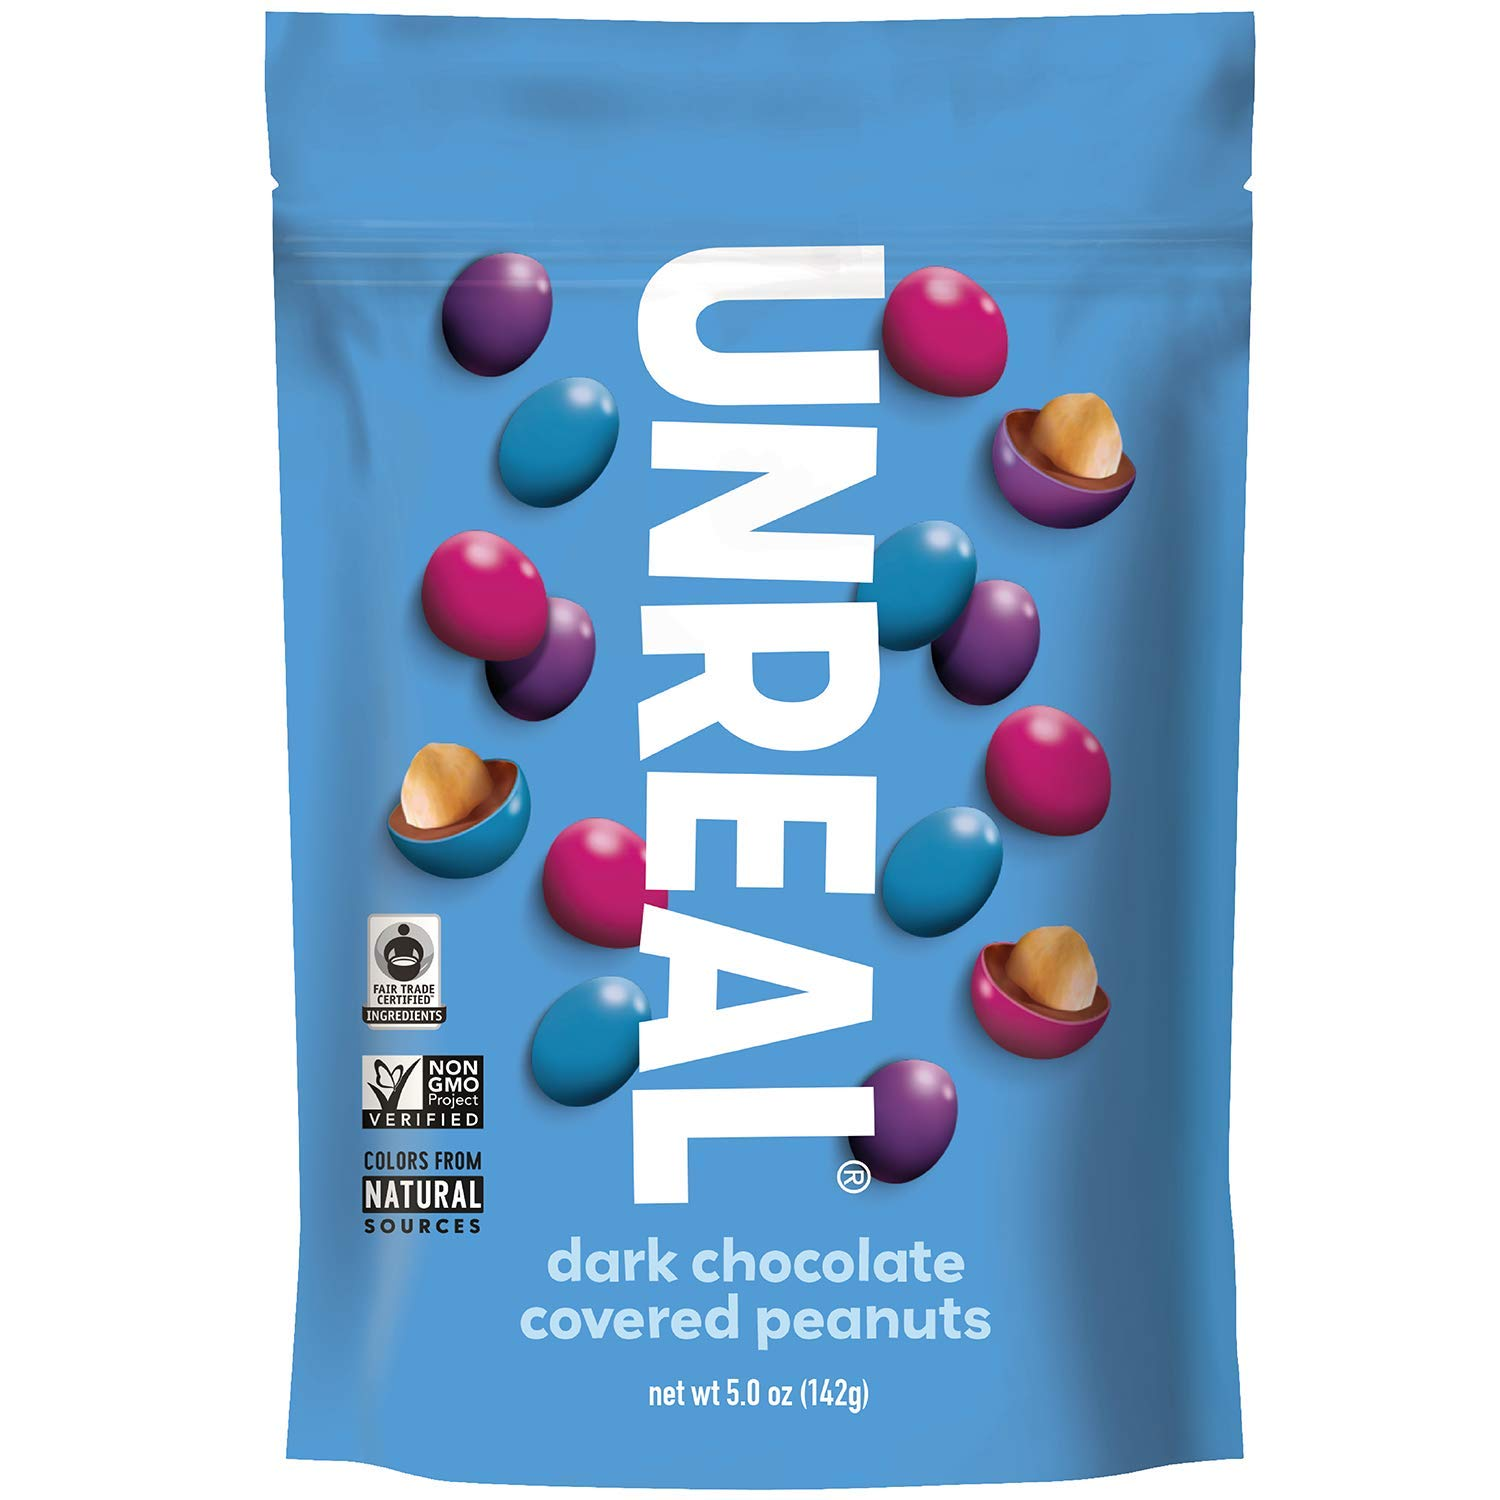 UNREAL Dark Chocolate Peanut Gems | Non-GMO, Vegan Certified, Colors from Nature | 6 Bags by UNREAL